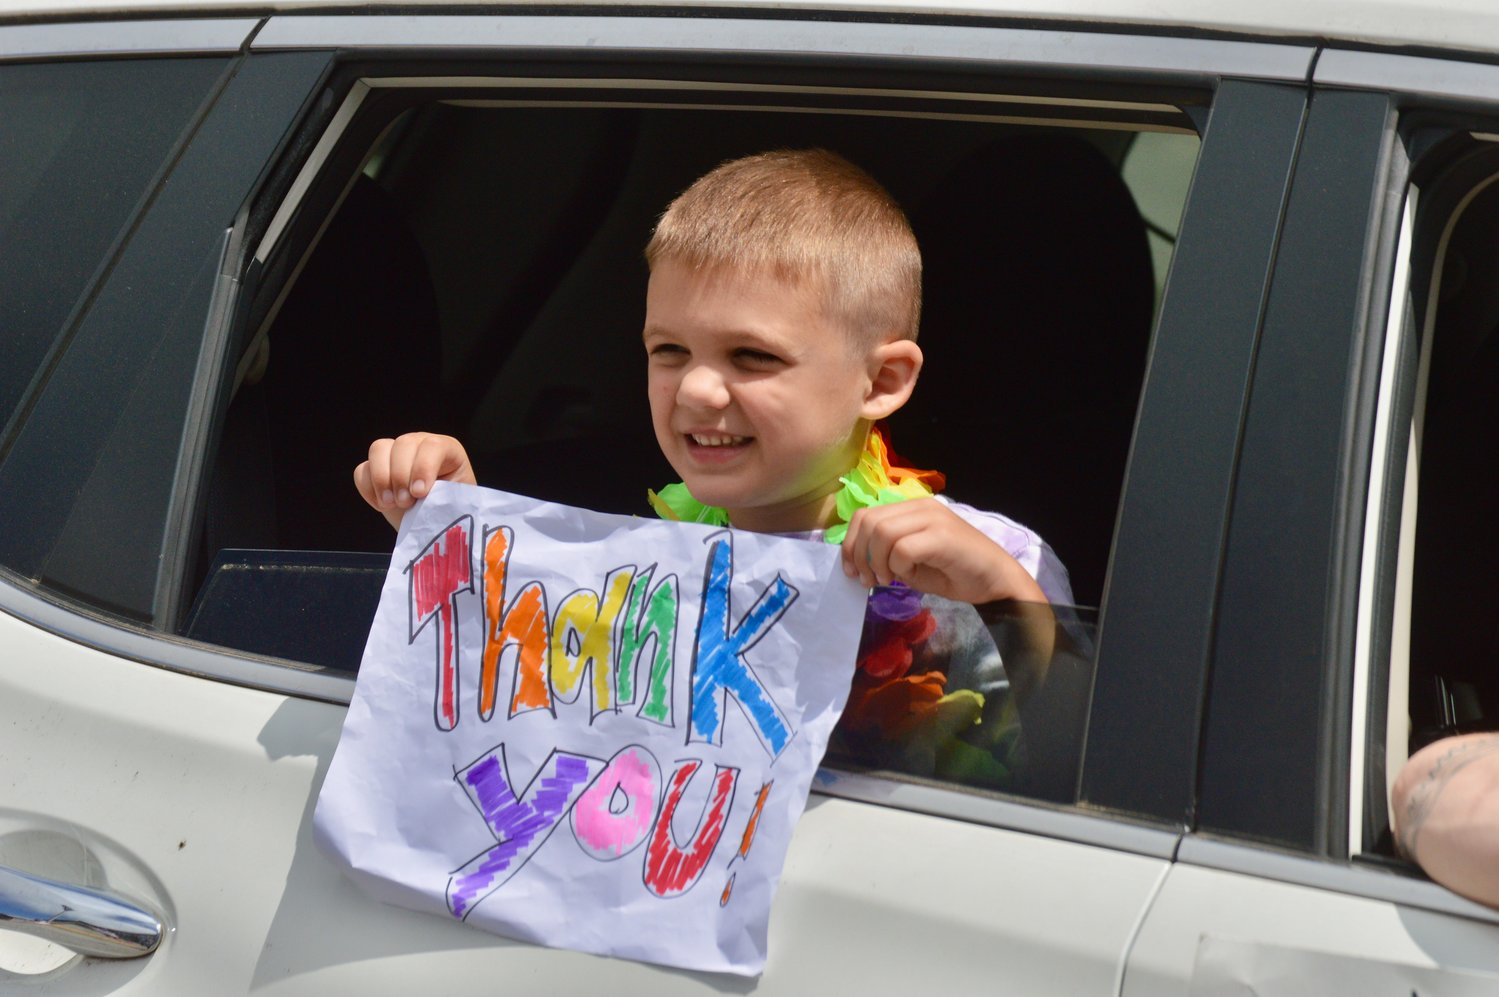 Andrew Habershaw shows his appreciation to Hathaway School teachers during a drive-by parade Thursday.